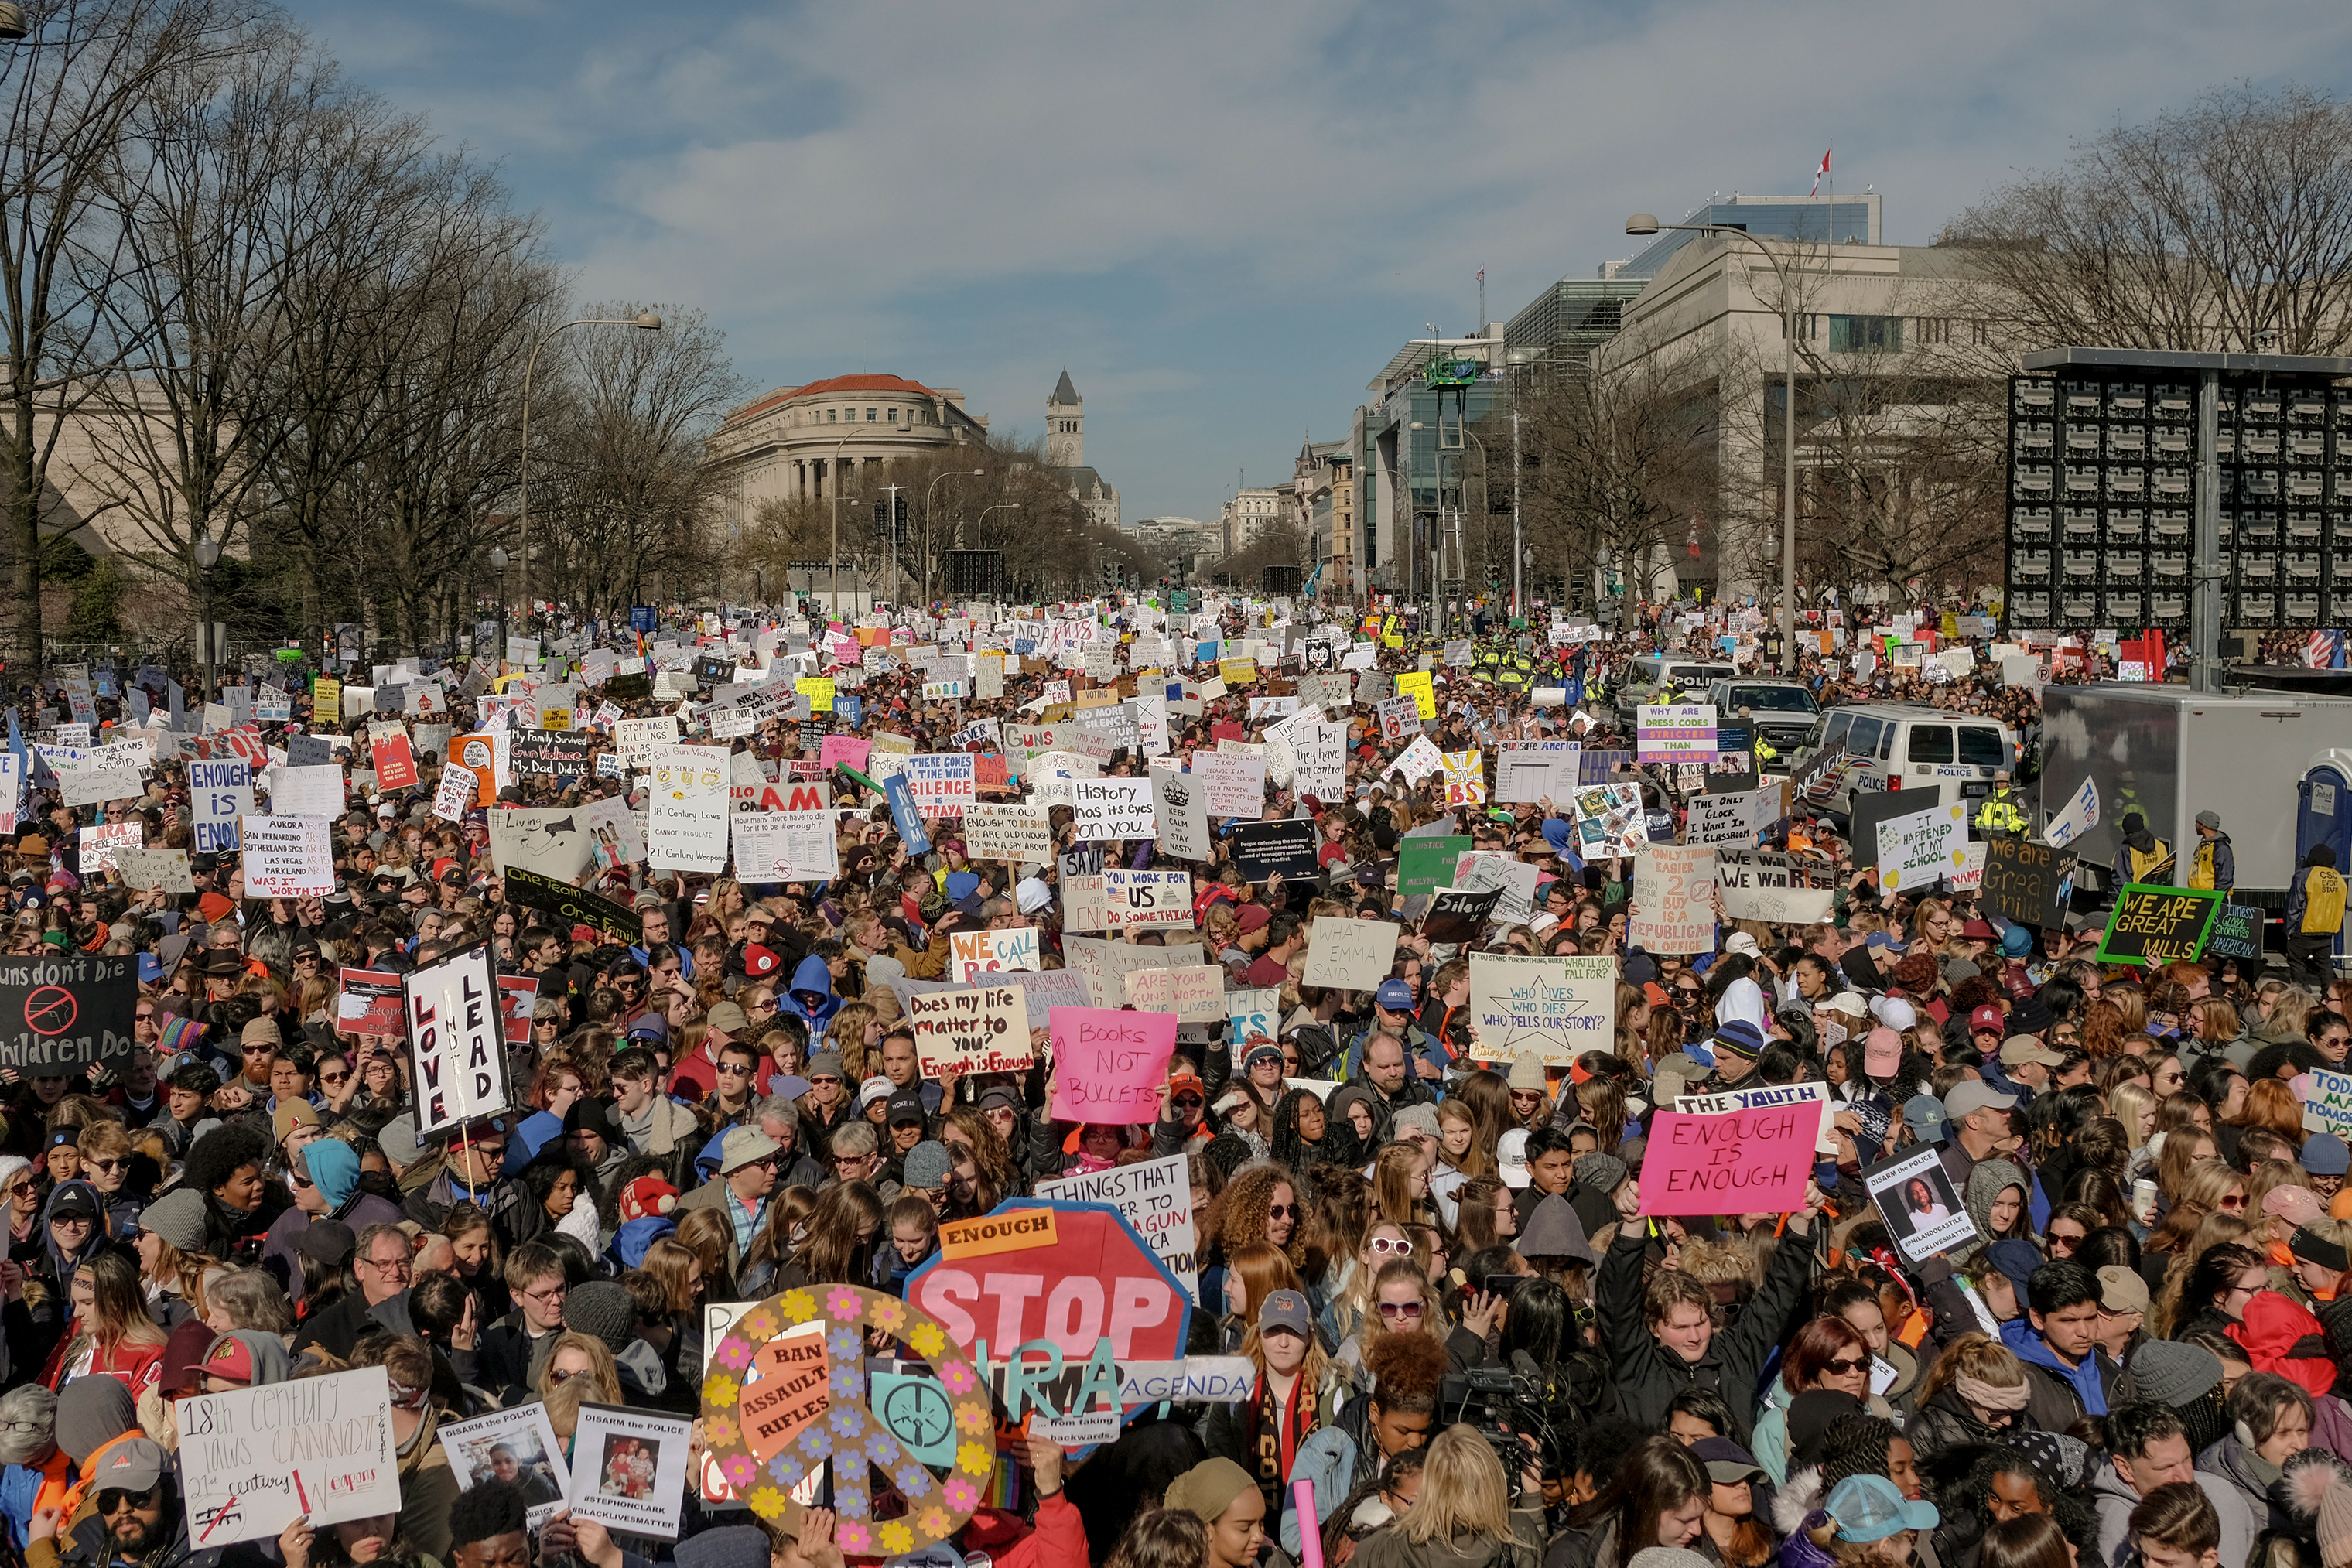 Demonstrators fill Pennsylvania Avenue as the March For Our Lives gets underway in Washington, D.C., on March 24, 2018.